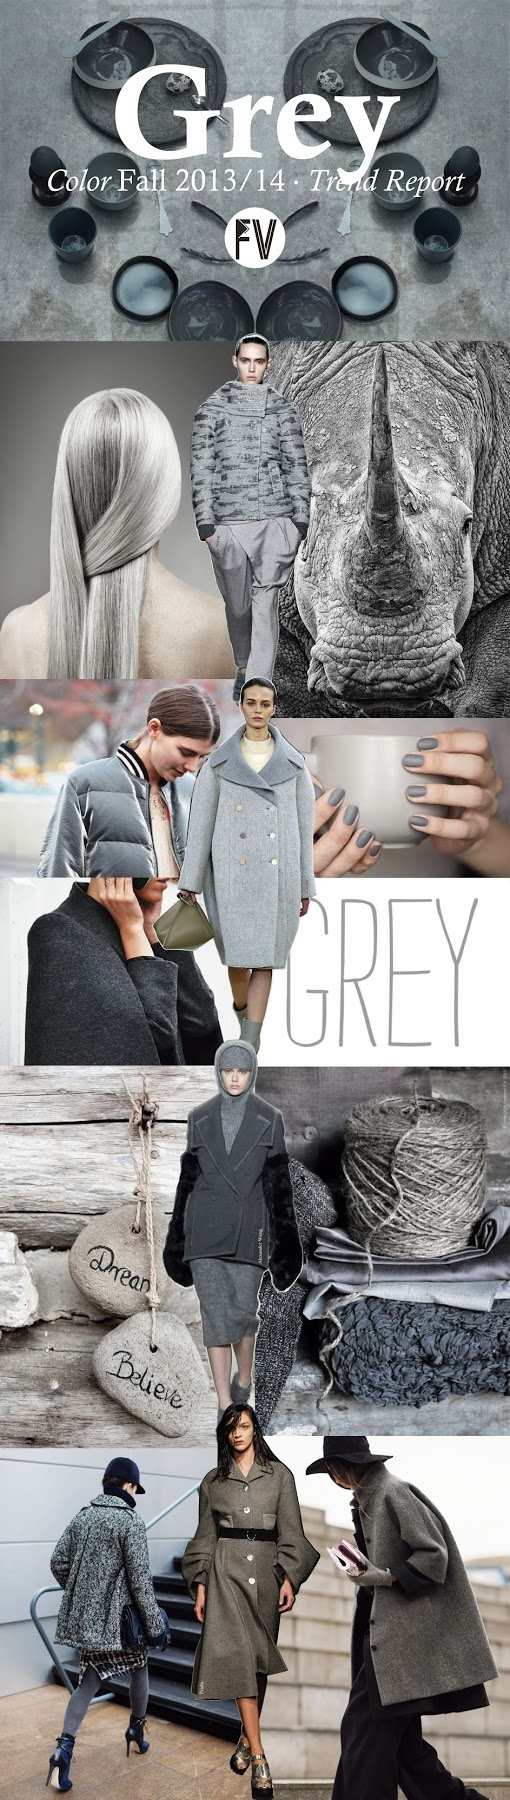 grey.....like to see it with a pow colour...lime, orange, red, violet, fuchsia, well, you know....